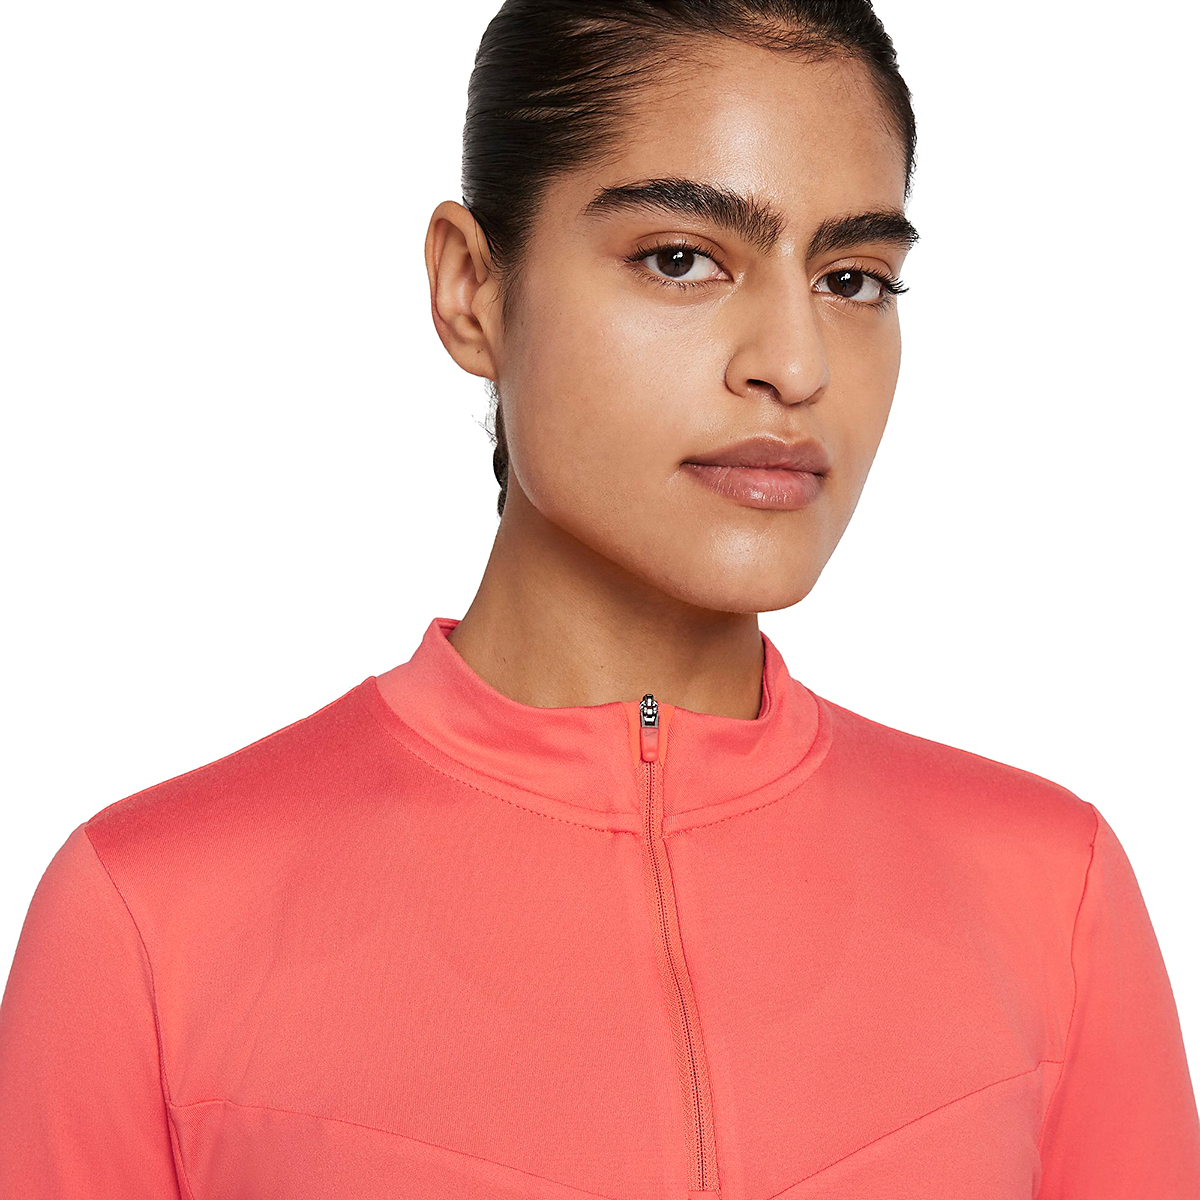 Women's Nike Element Trail Running Midlayer - Color: Magic Ember/Reflective Silver - Size: XS, Magic Ember/Reflective Silver, large, image 3